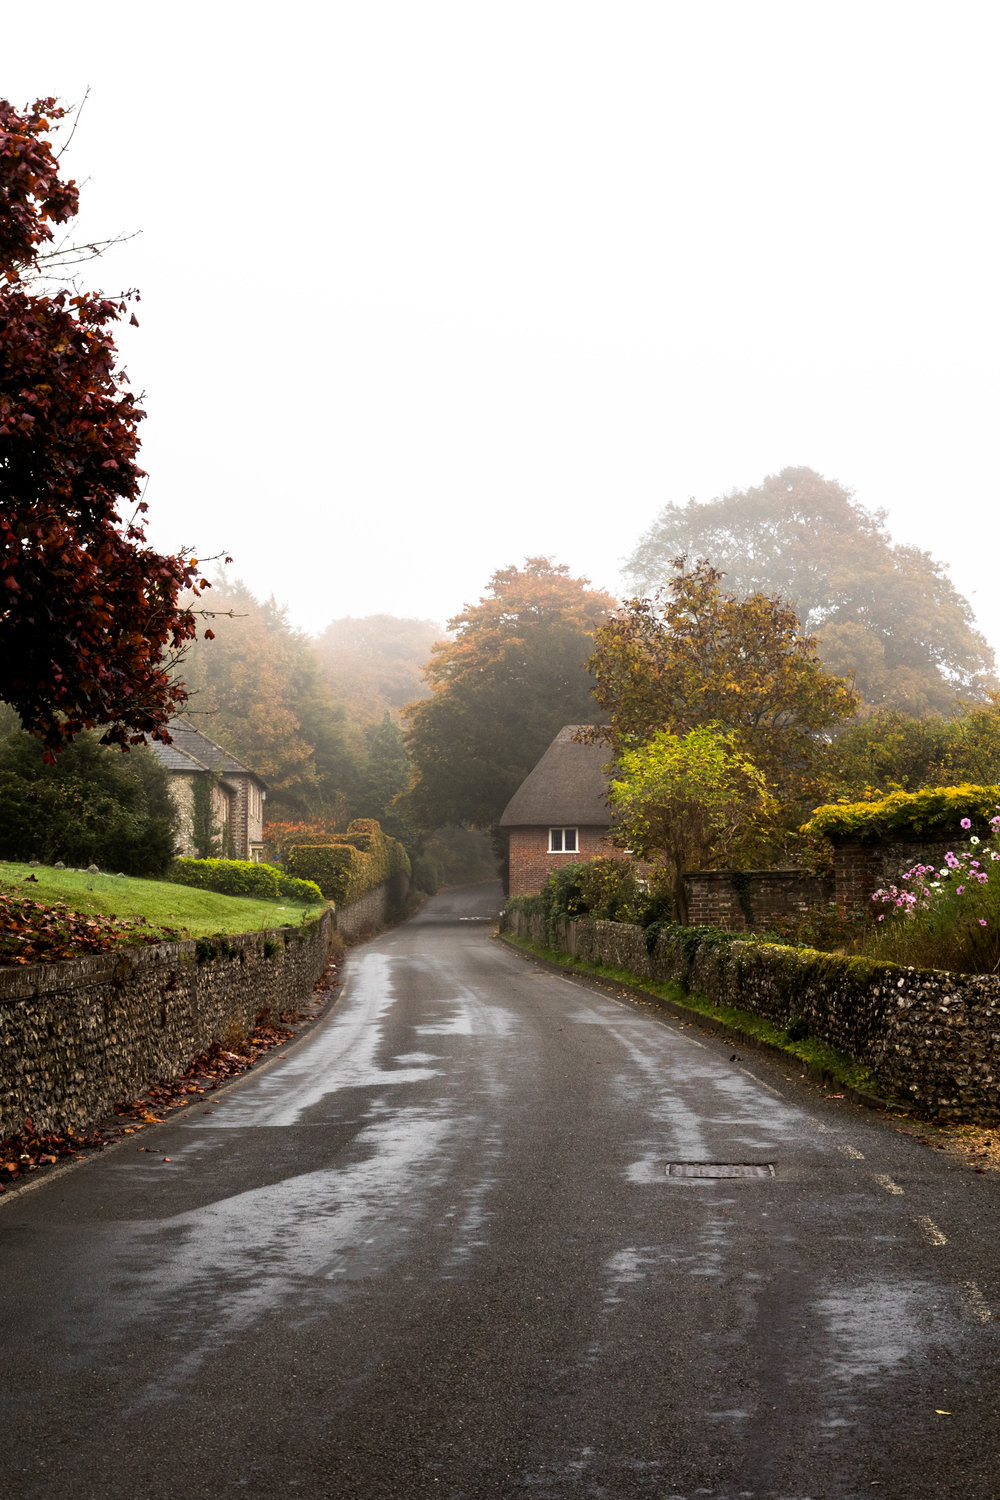 Misty, milky, foggy country lanes ....